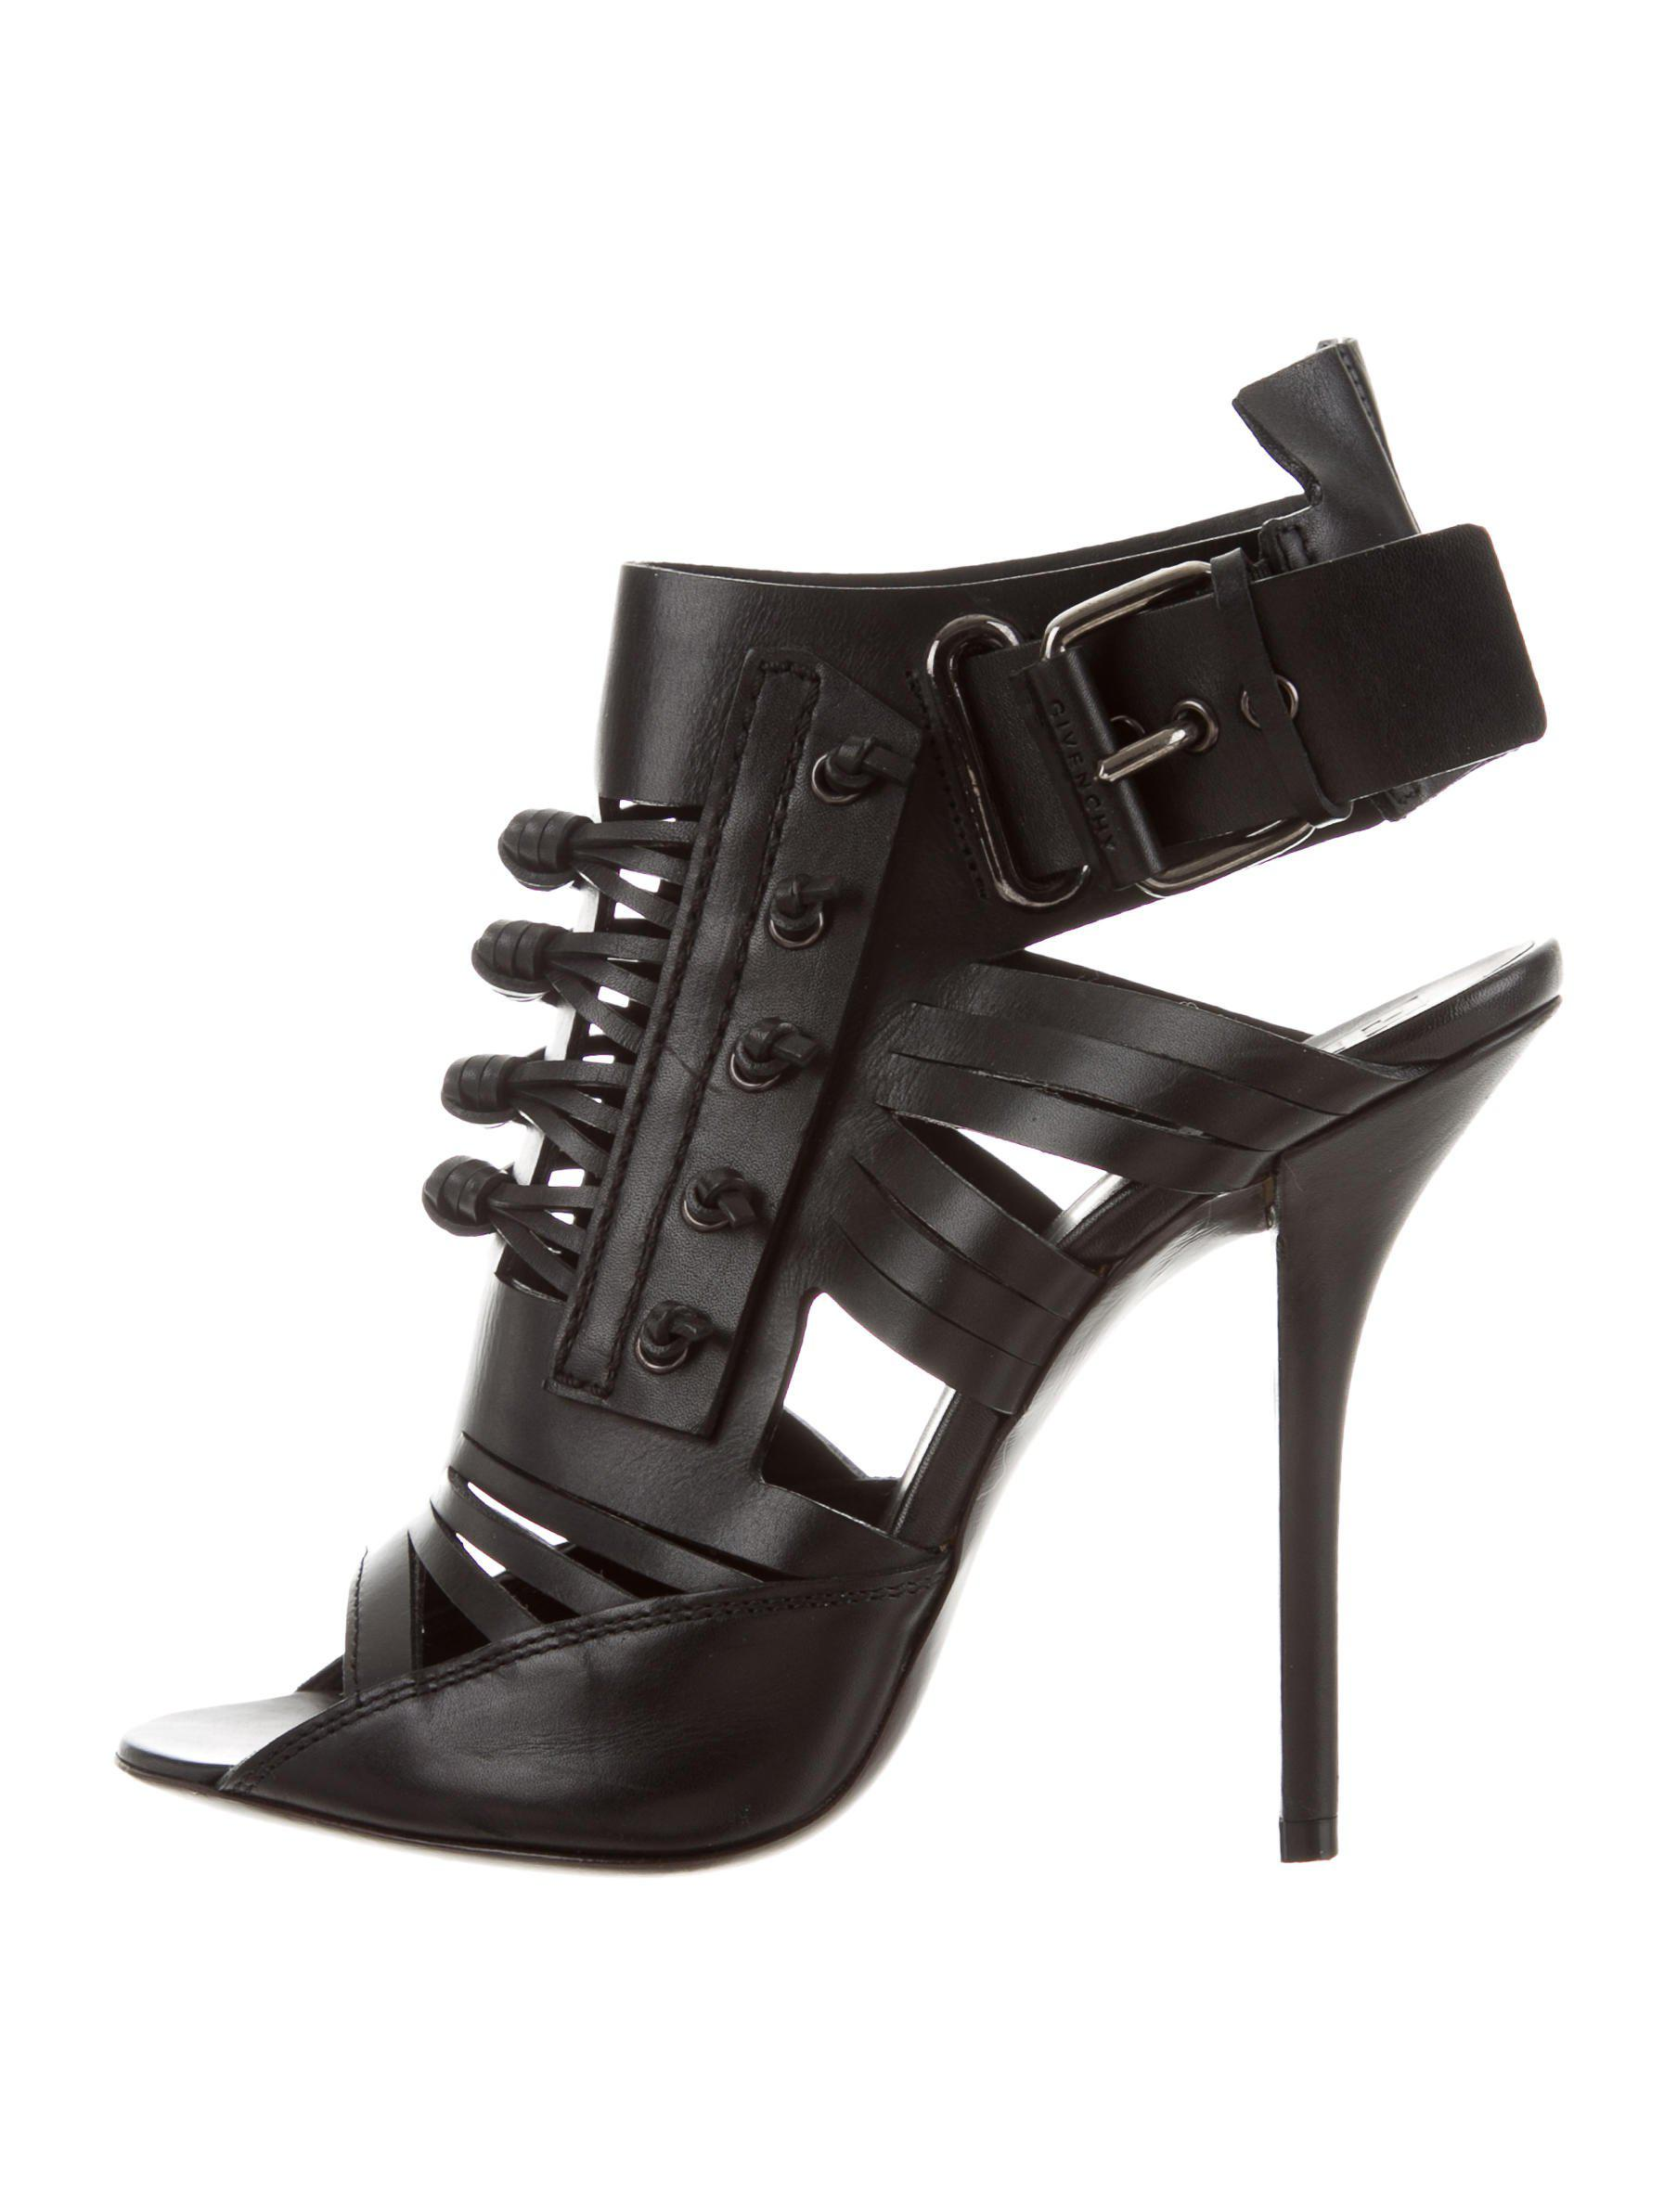 6fa0bf0abcc Lyst - Givenchy Woven Leather Sandals in Black